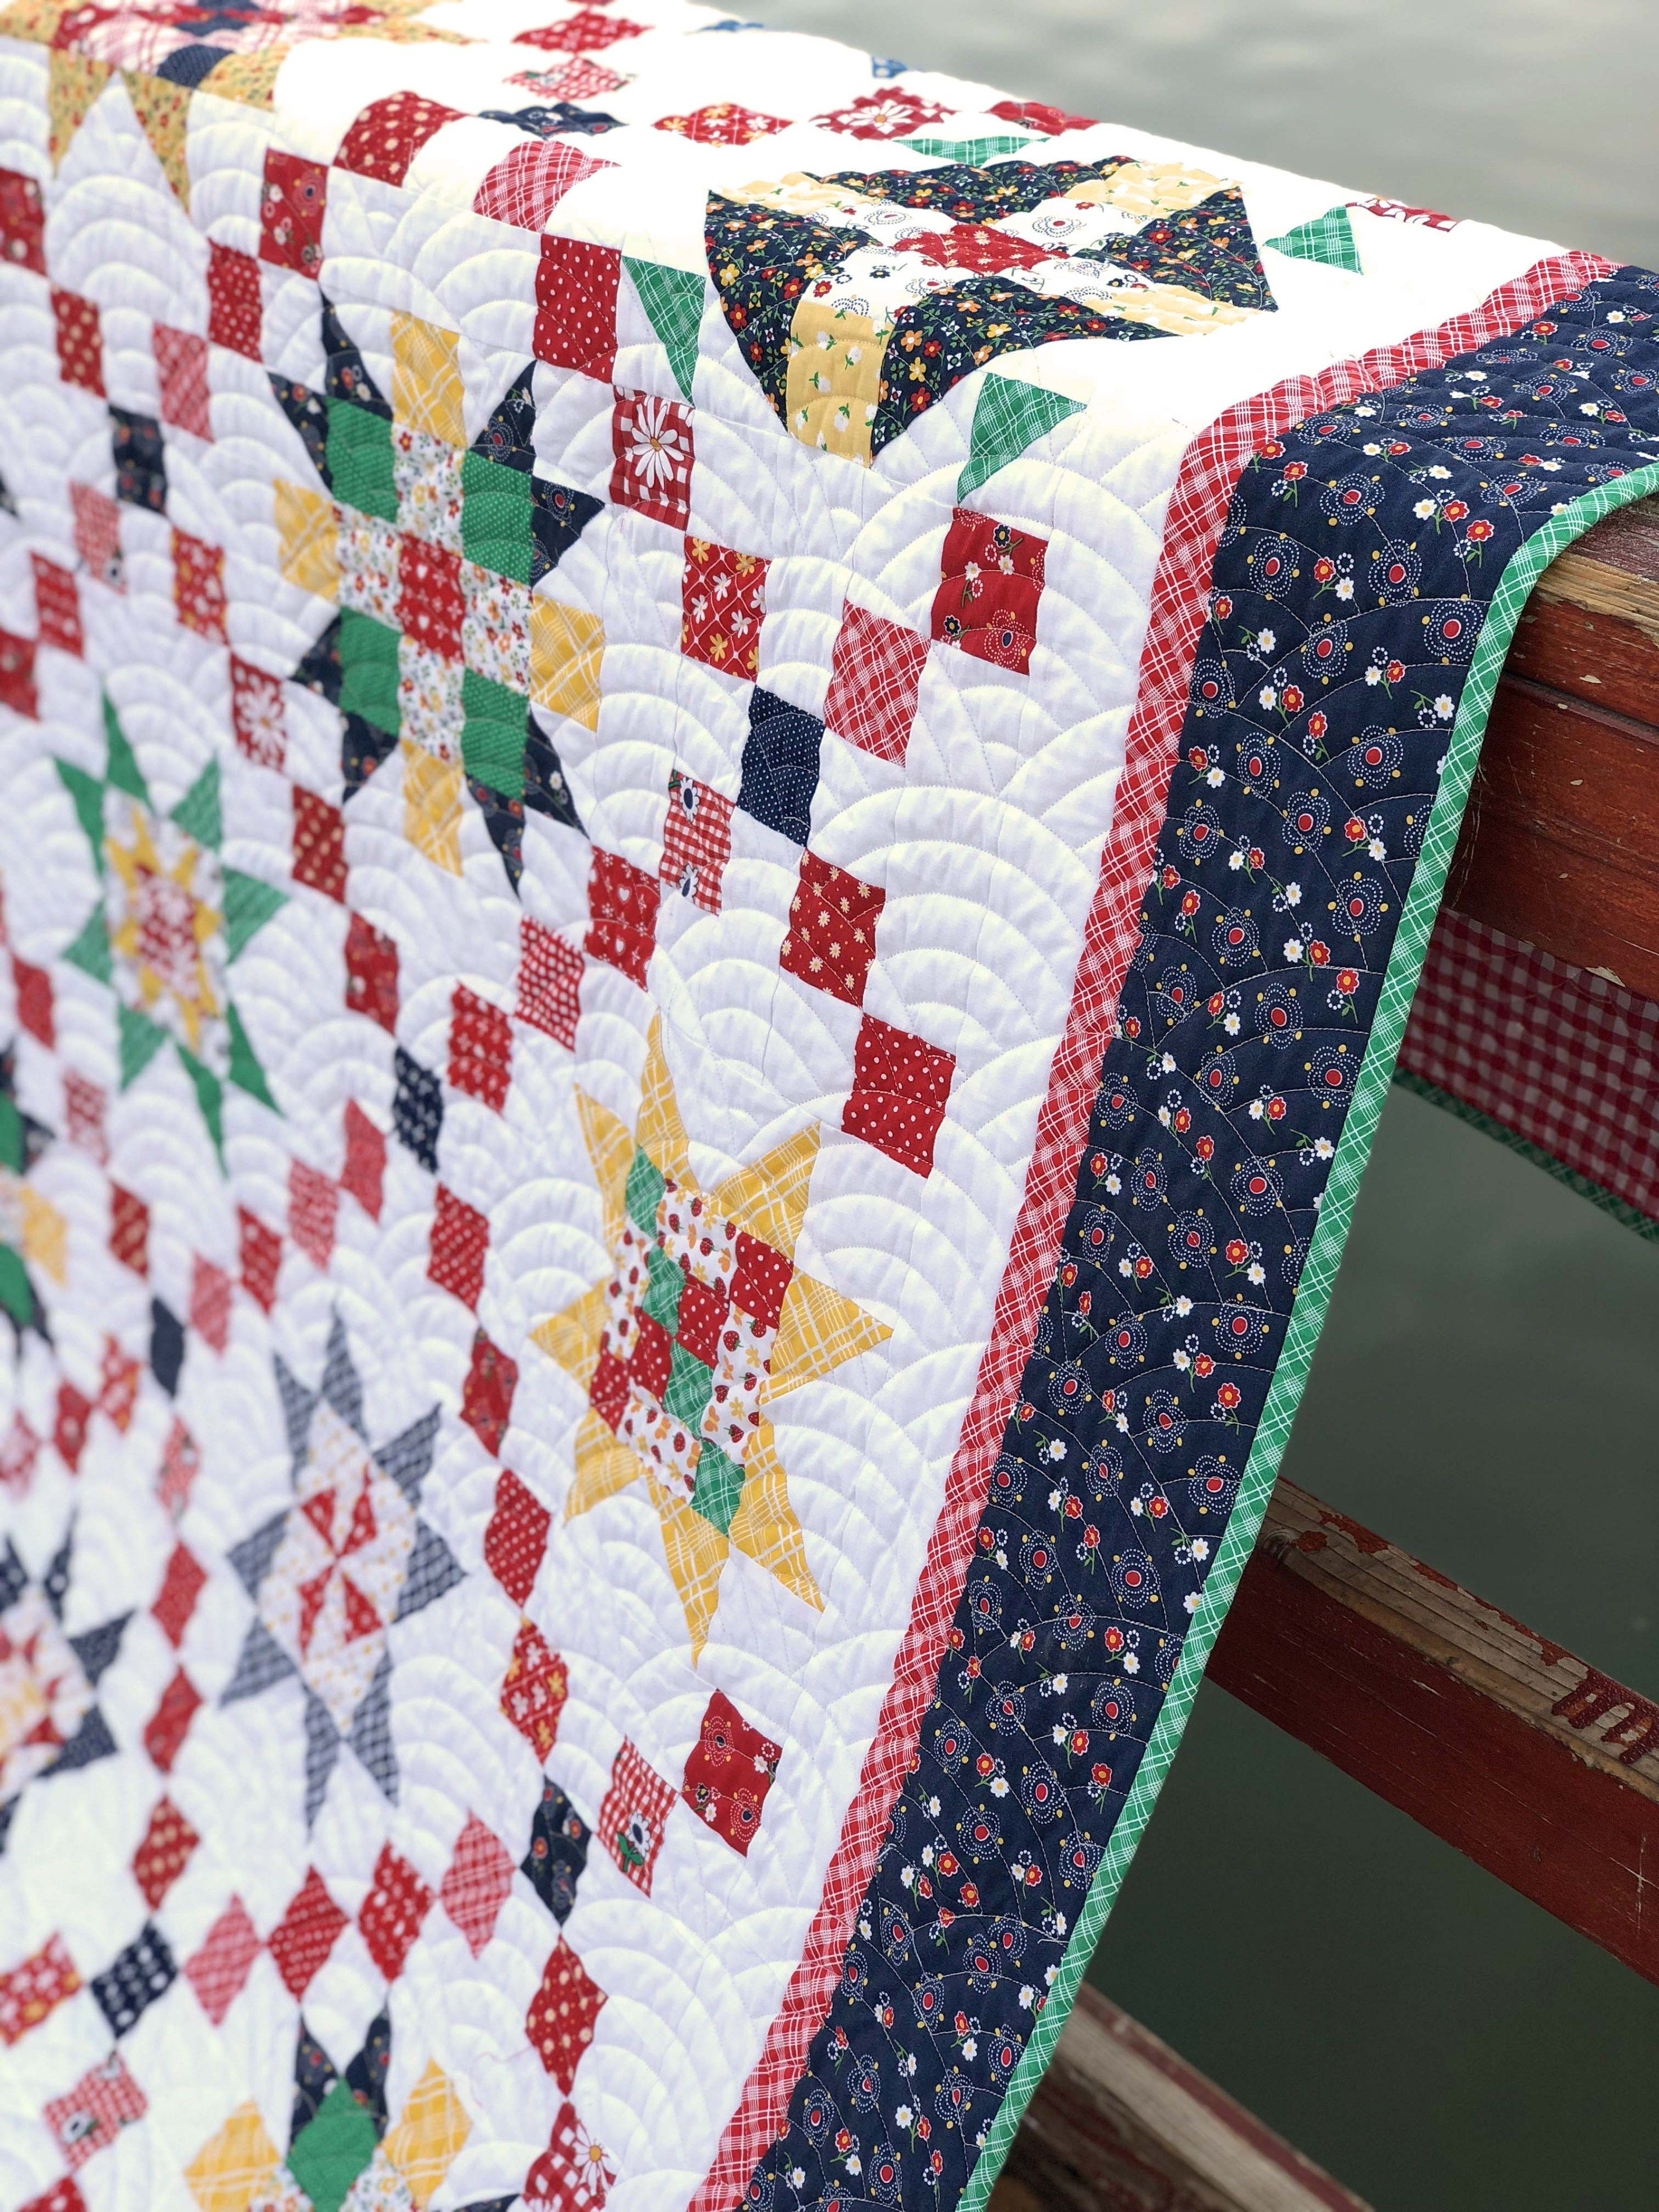 Free Sampler Quilt Tutorial From Riley Blake And Amy Smart Diary Of A Quilter A Quilt Blog Sampler Quilts Amish Quilt Patterns Sampler Quilt